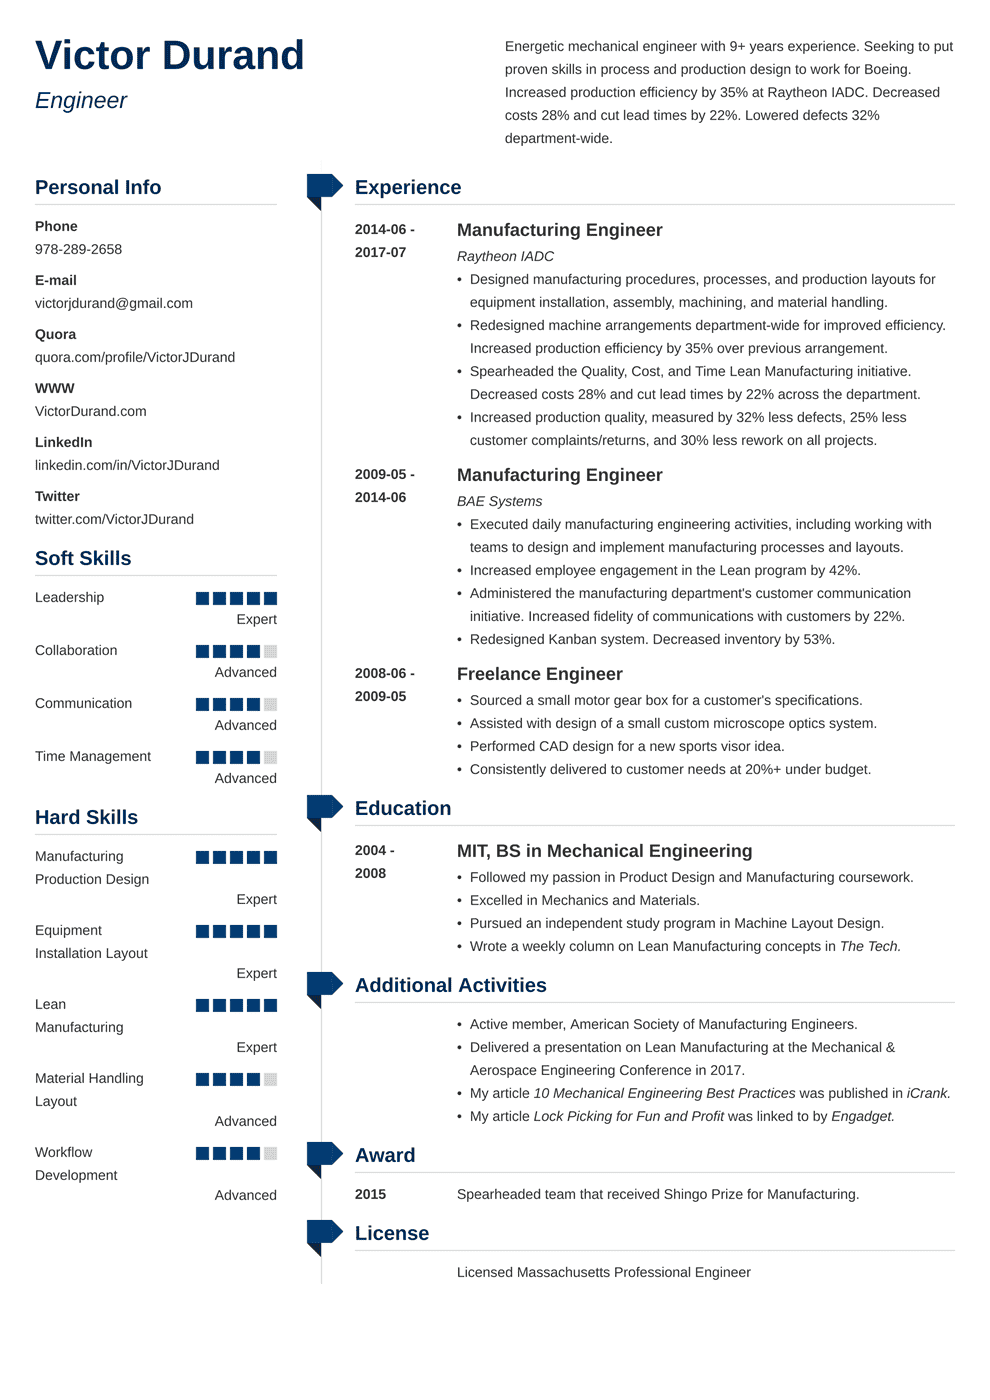 Engineering Resume: Sample and Complete Guide [+20 Examples]